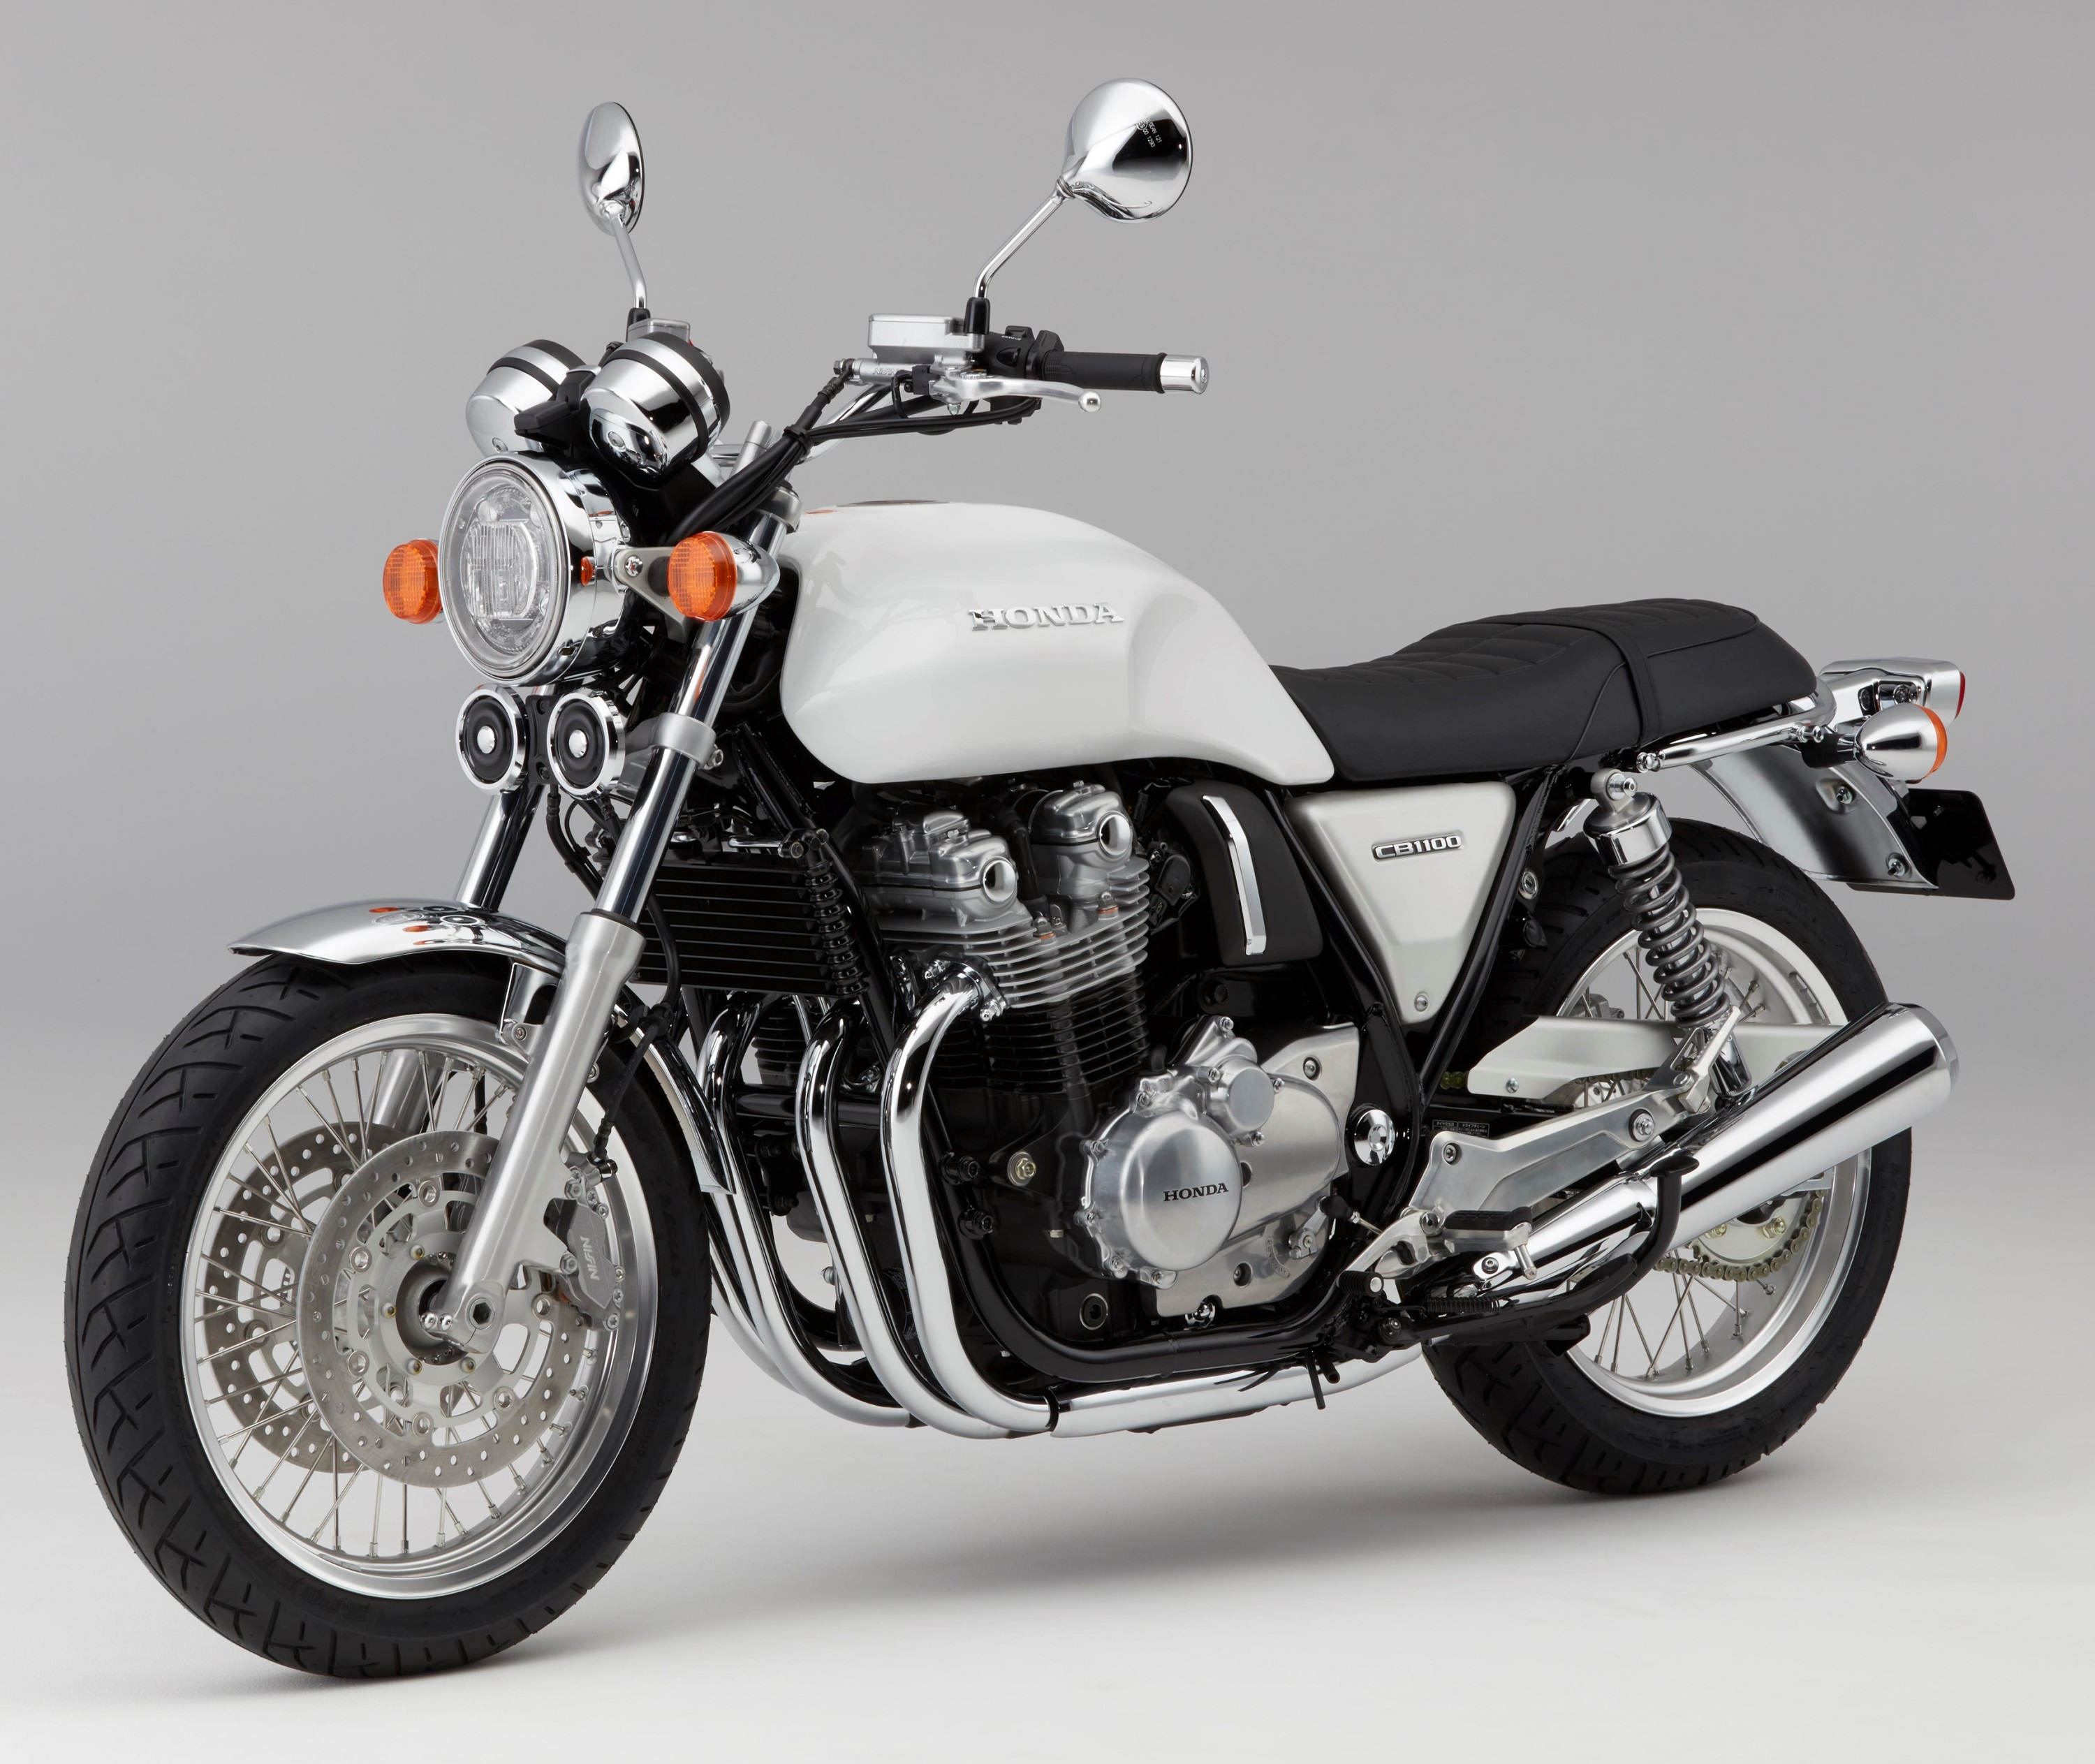 honda cb1100 ex 2014 on for sale pricing also consider videos [ 1496 x 1260 Pixel ]